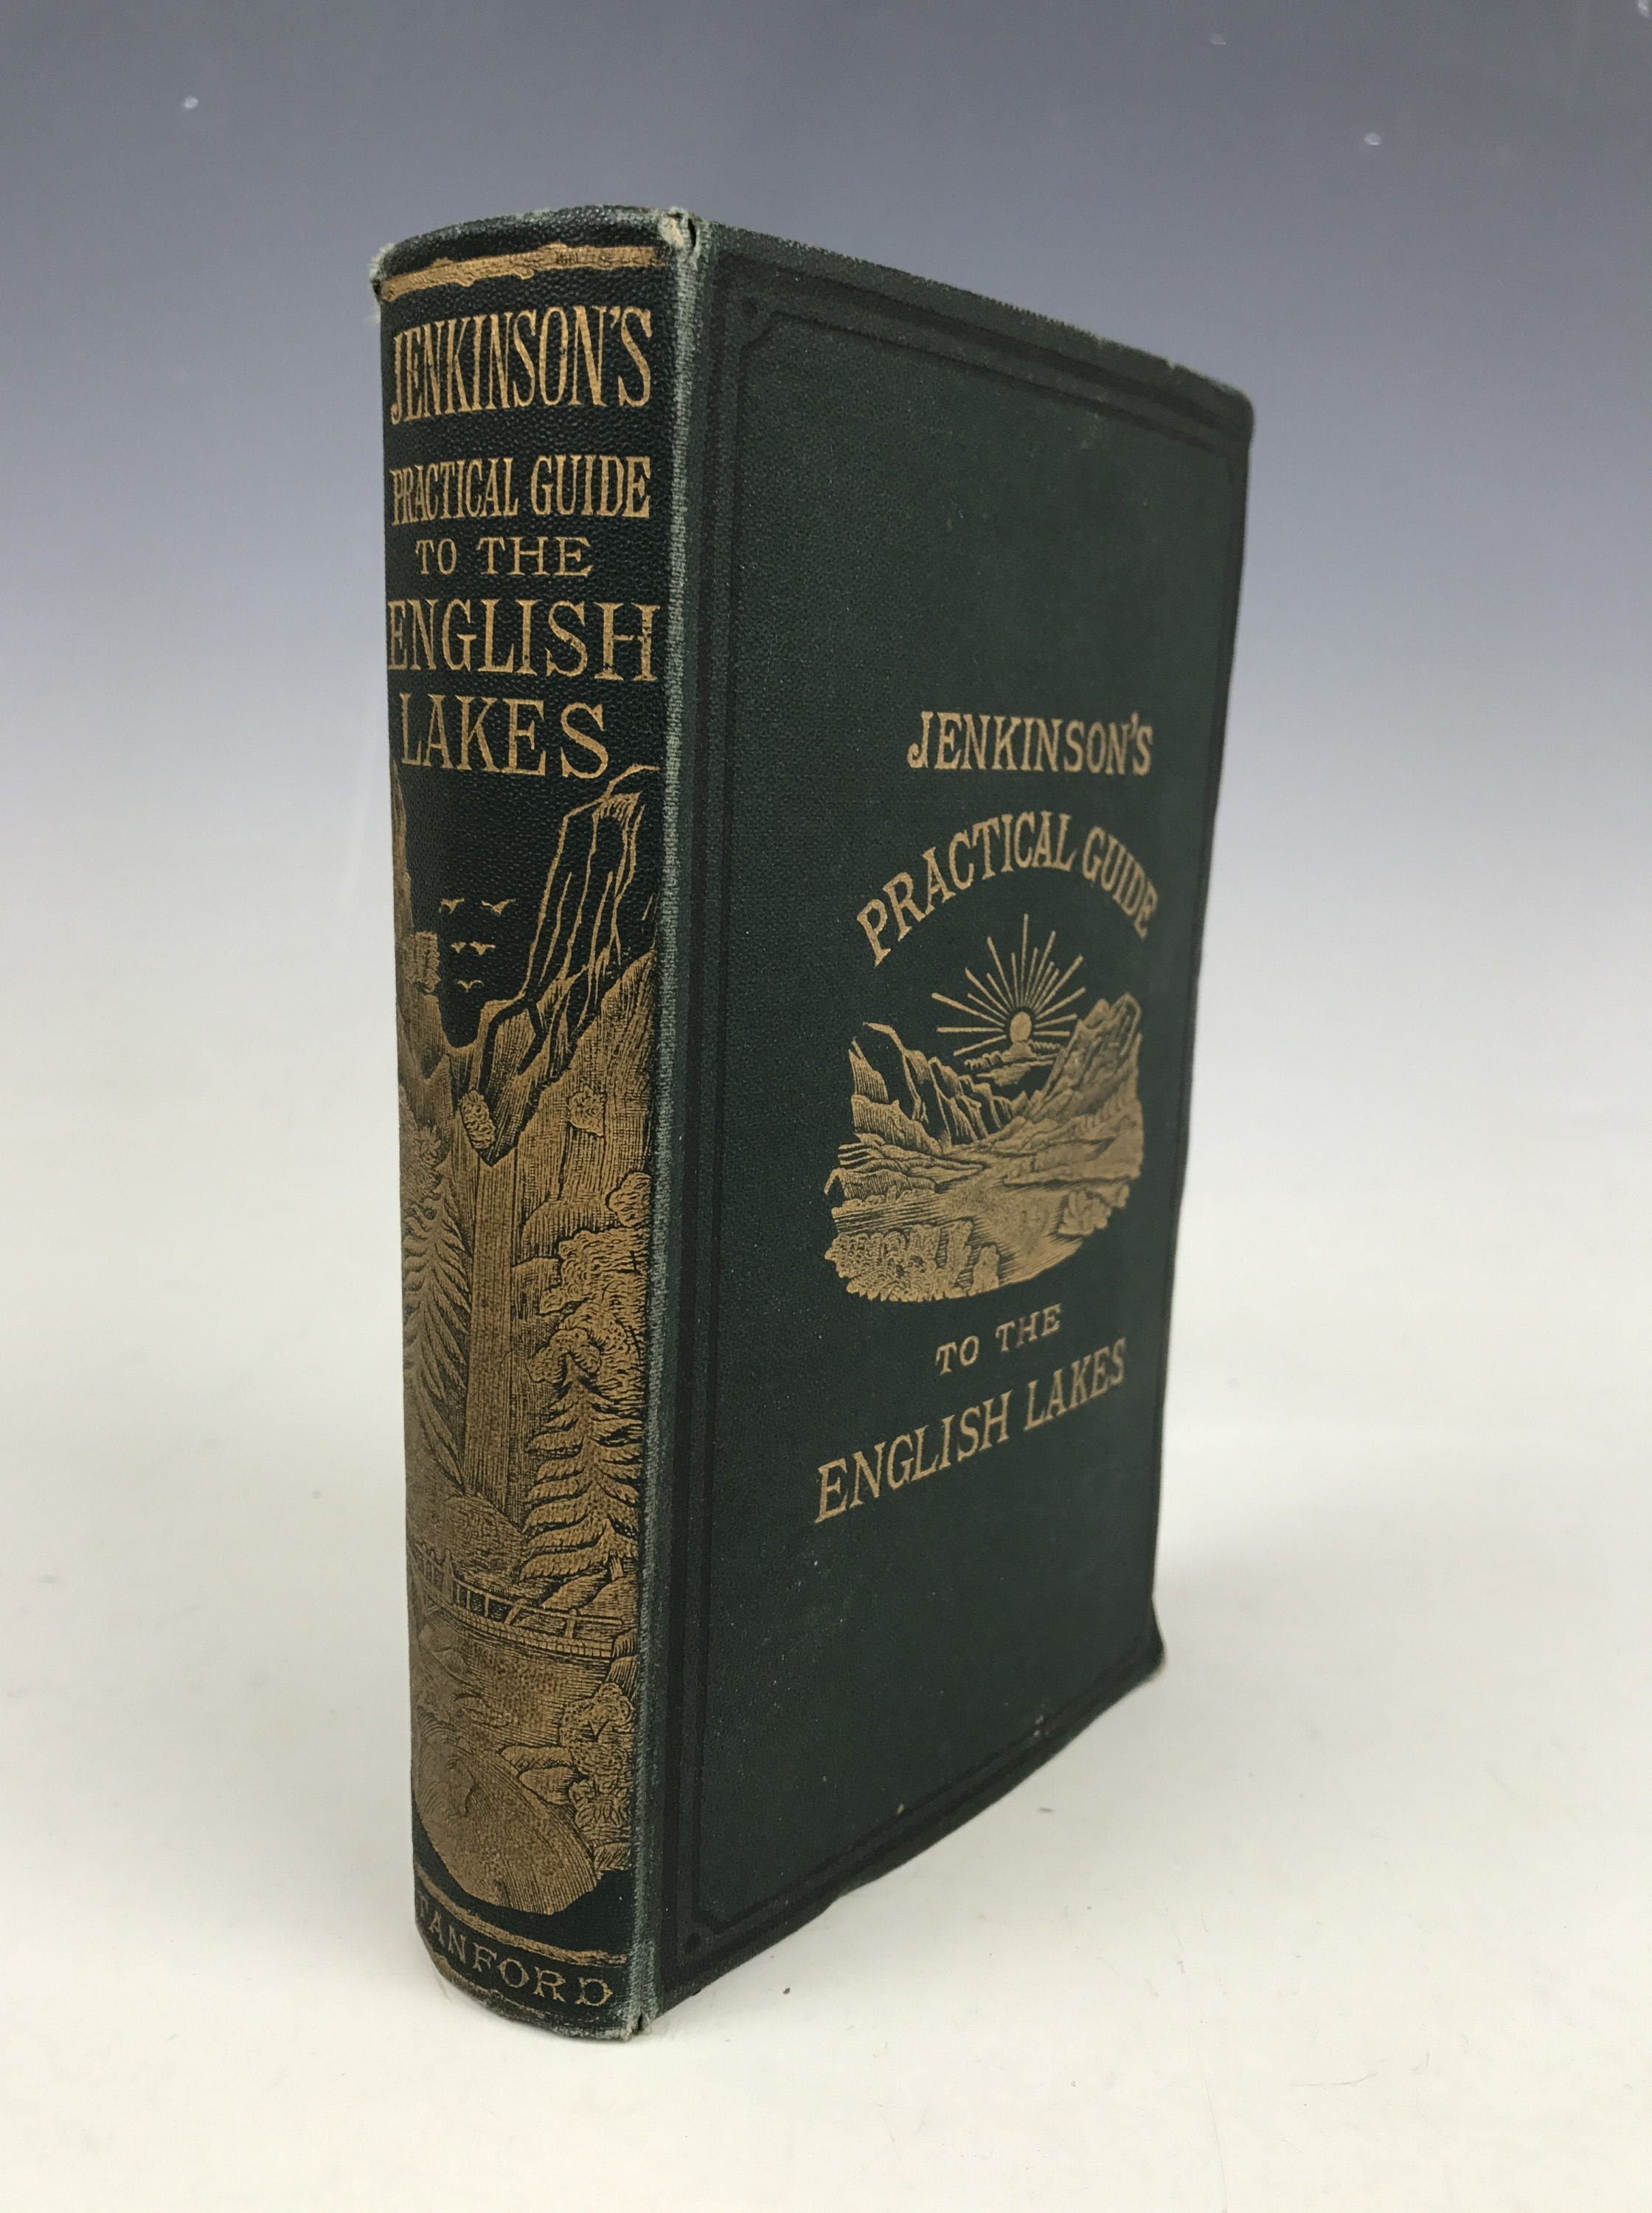 Lot 42 - Henry Irwin Jenkinson, Practical Guide to the English Lake District, Edward Stanford, 1881